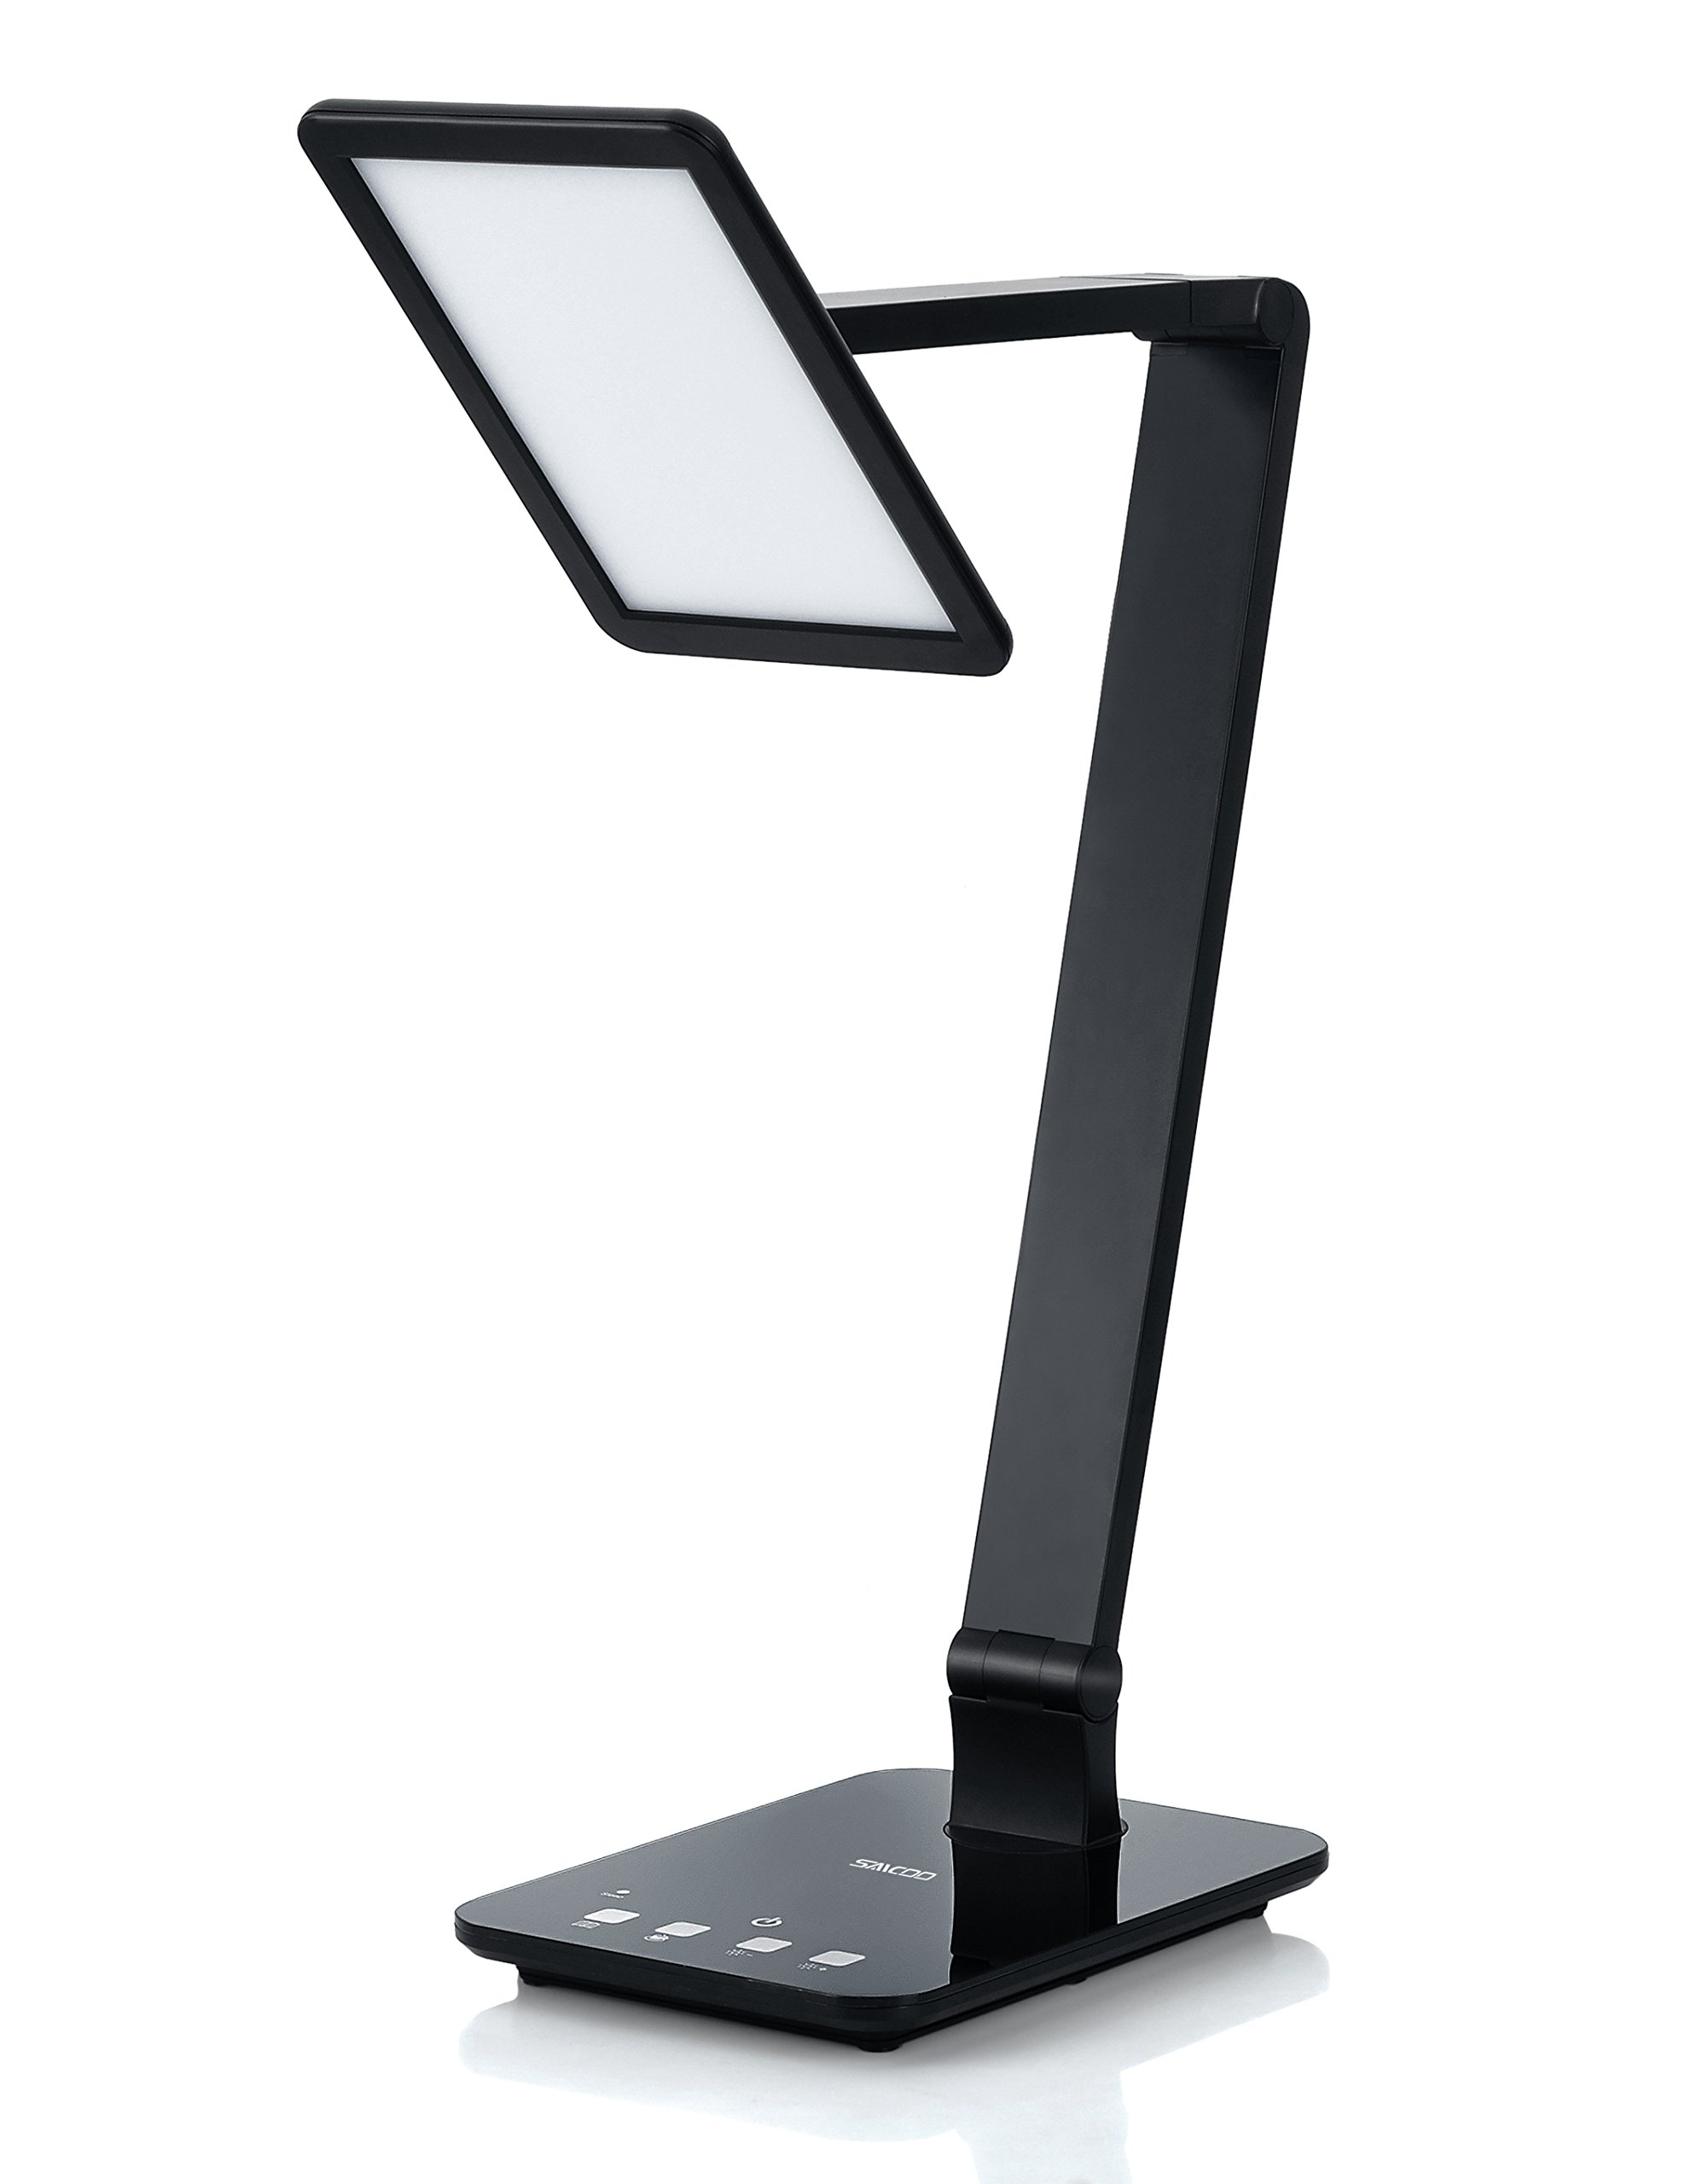 LED Desktop Lamp Saicoo Desk lamp with Large LED Panel, Seamless Dimming-Control of Brightness and Color Temperature, an USB Charging Port